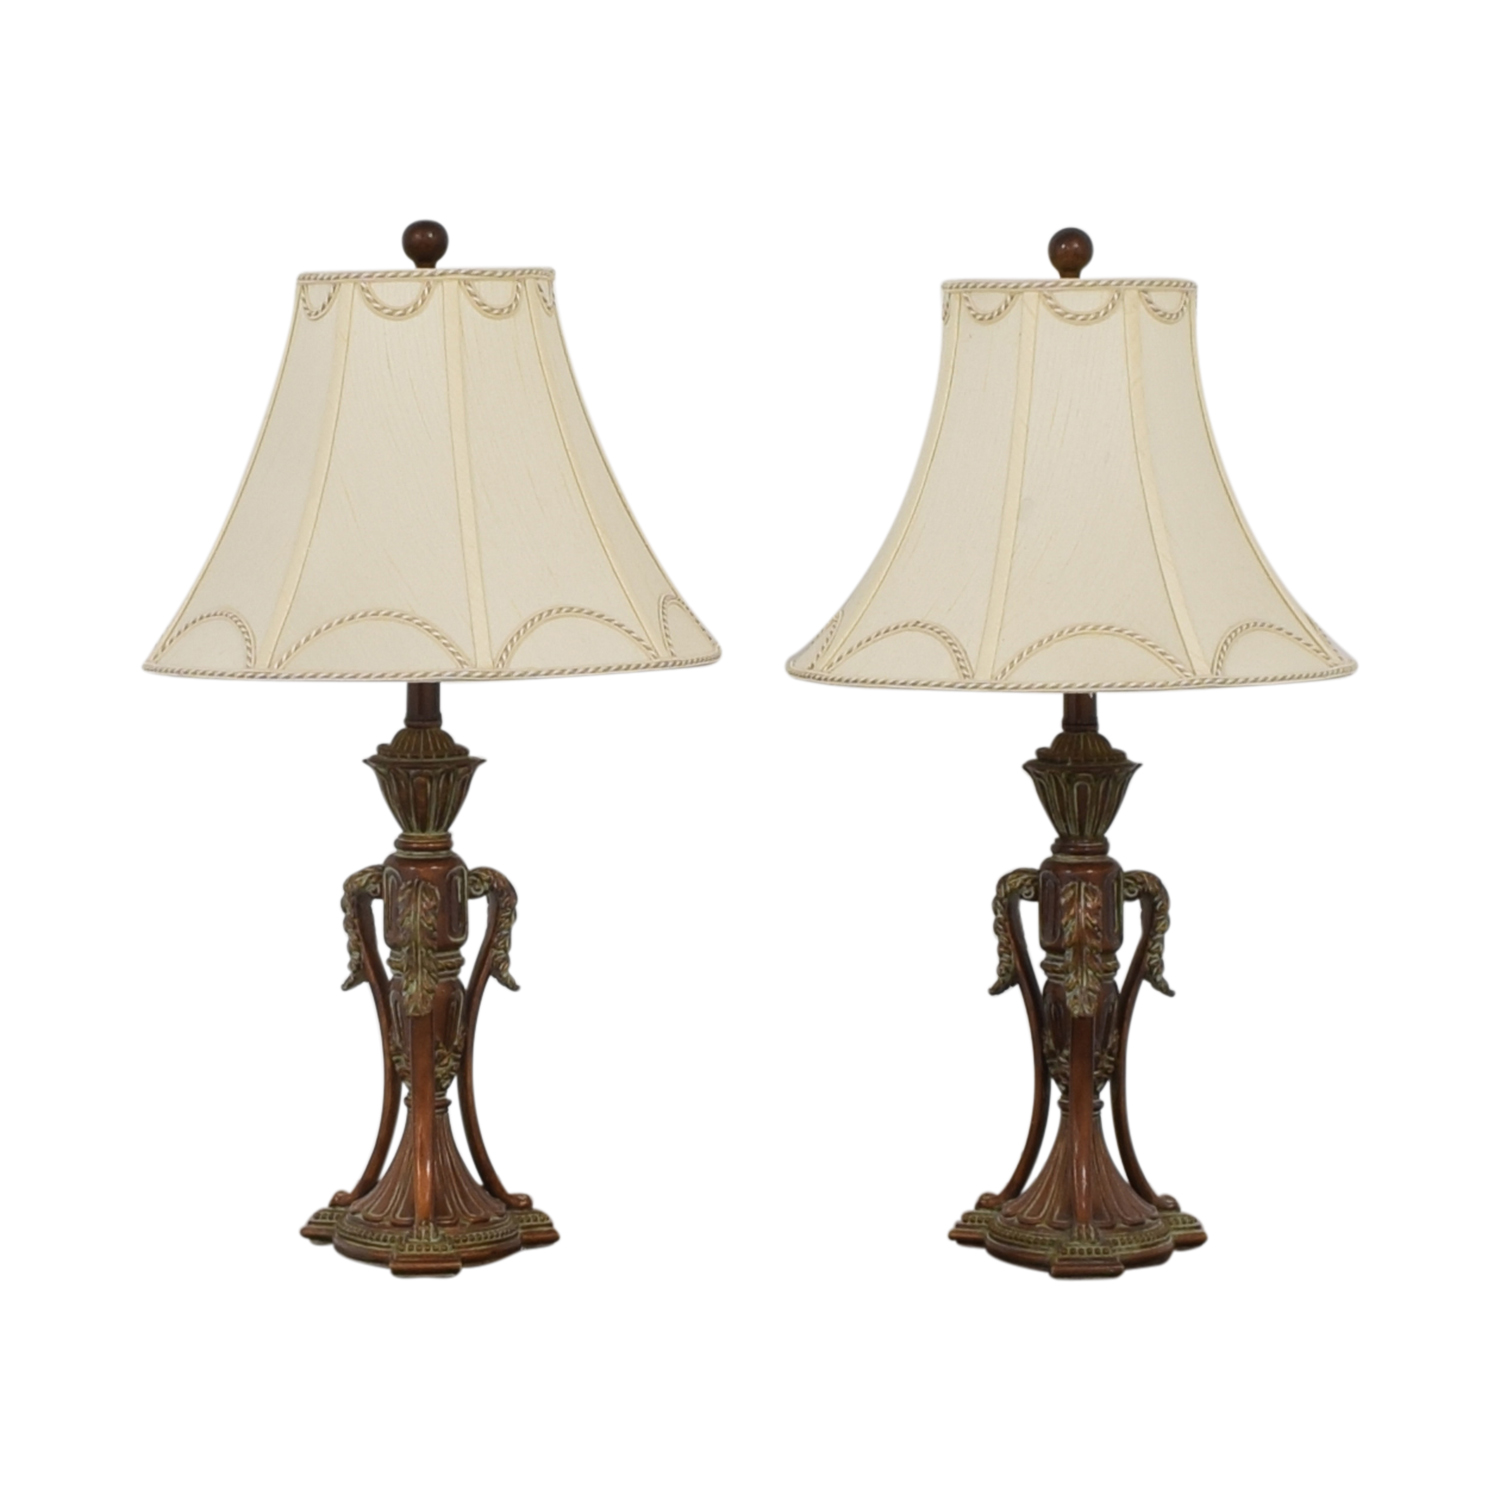 Cambridge Table Lamps